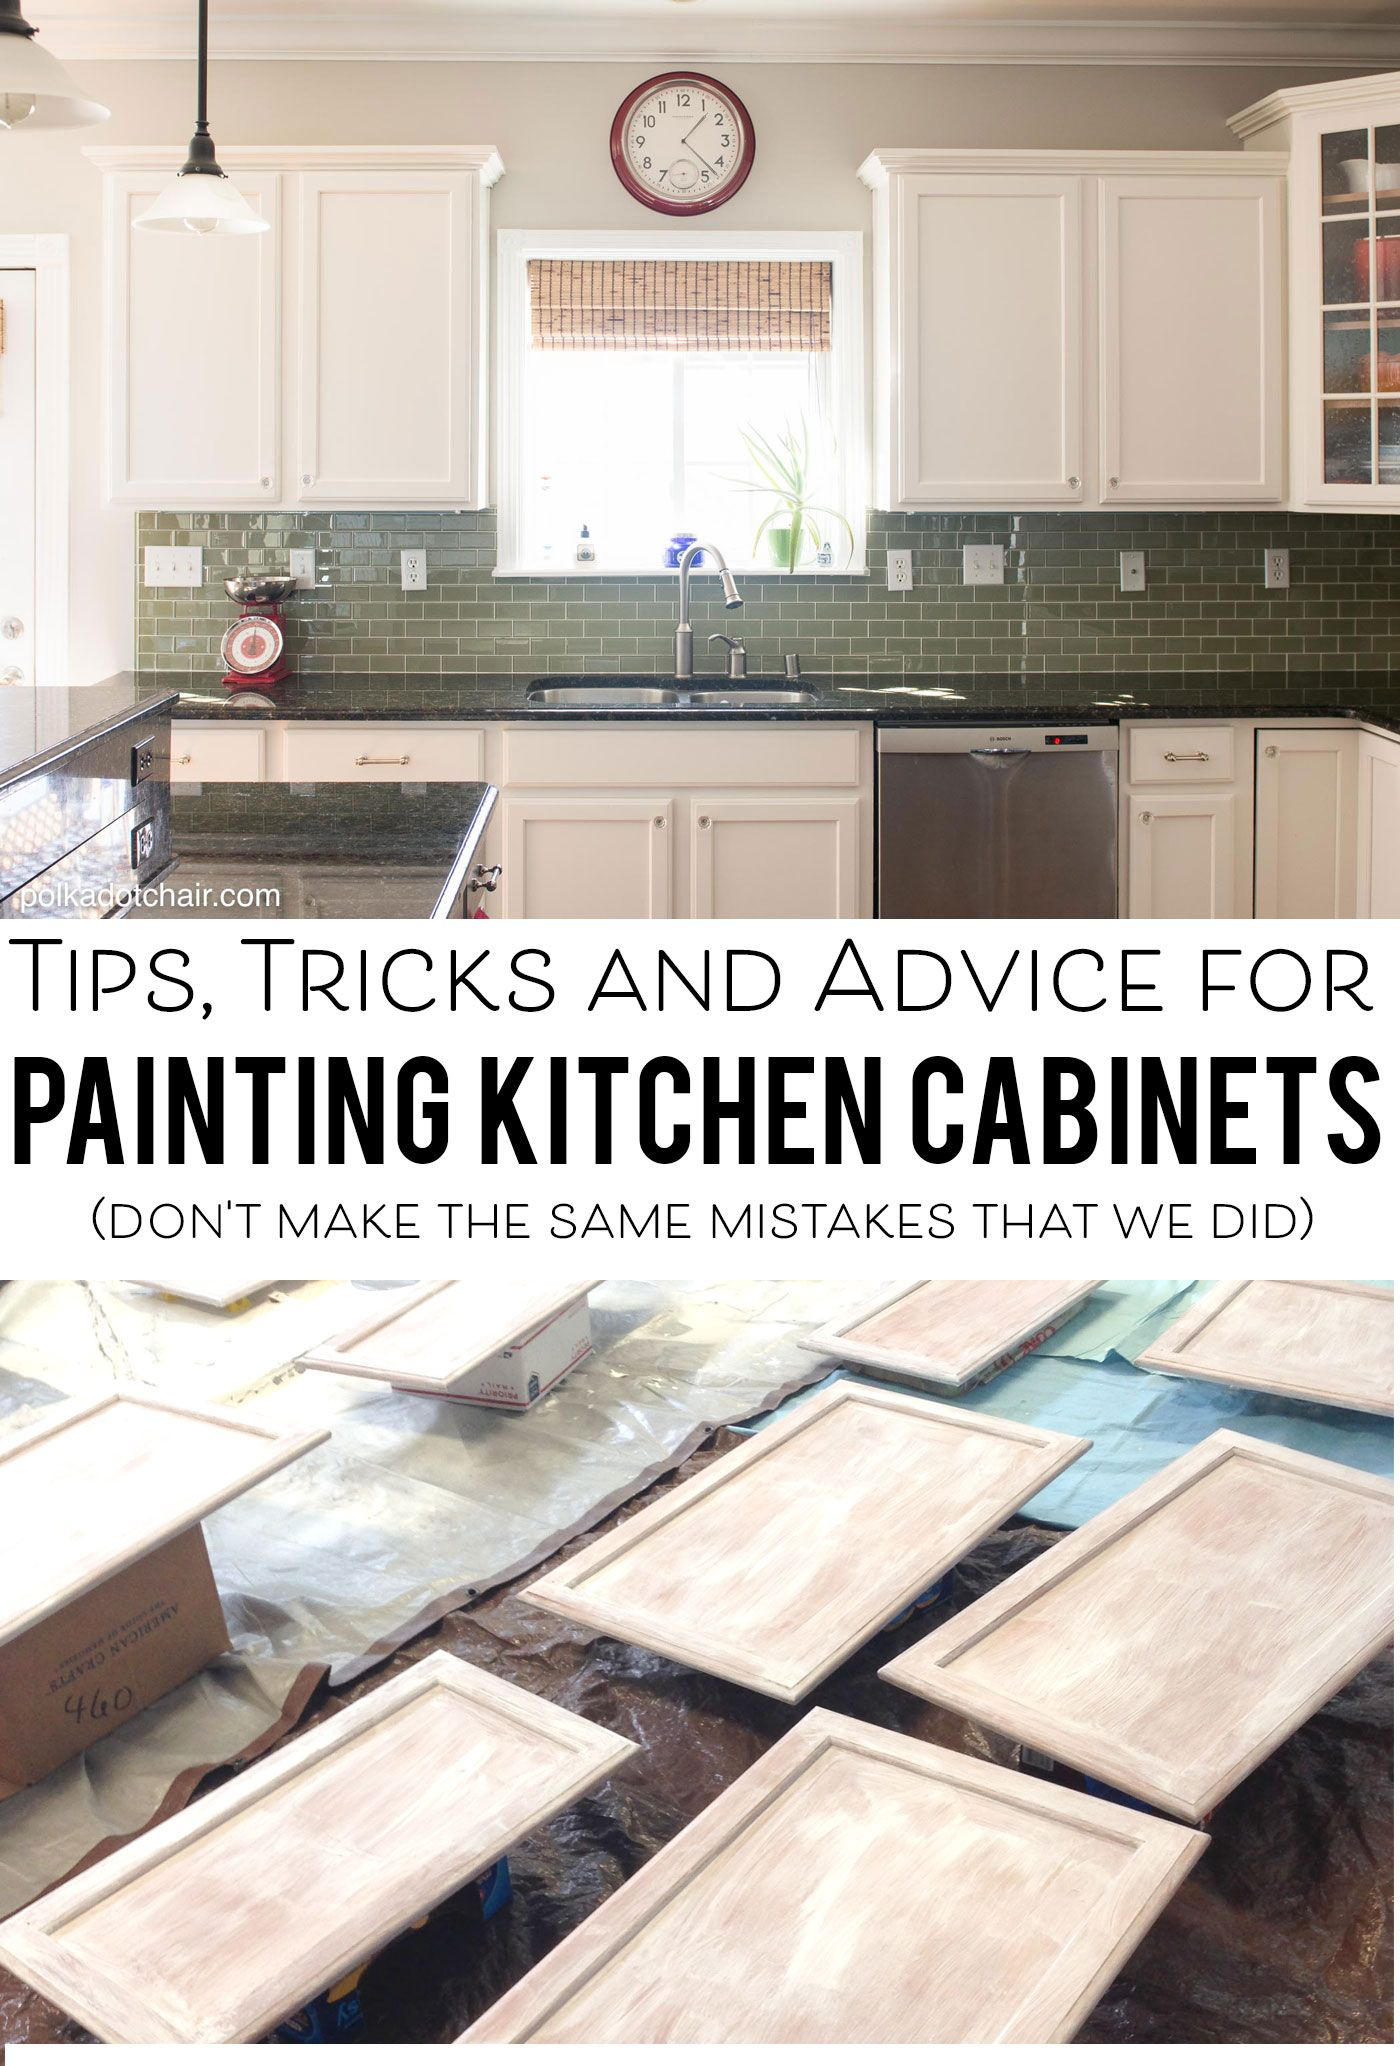 Tips And Tricks For Painting Kitchen Cabinets Polka Dot Chair Painting Kitchen Cabinets Painting Kitchen Cabinets White Kitchen Paint